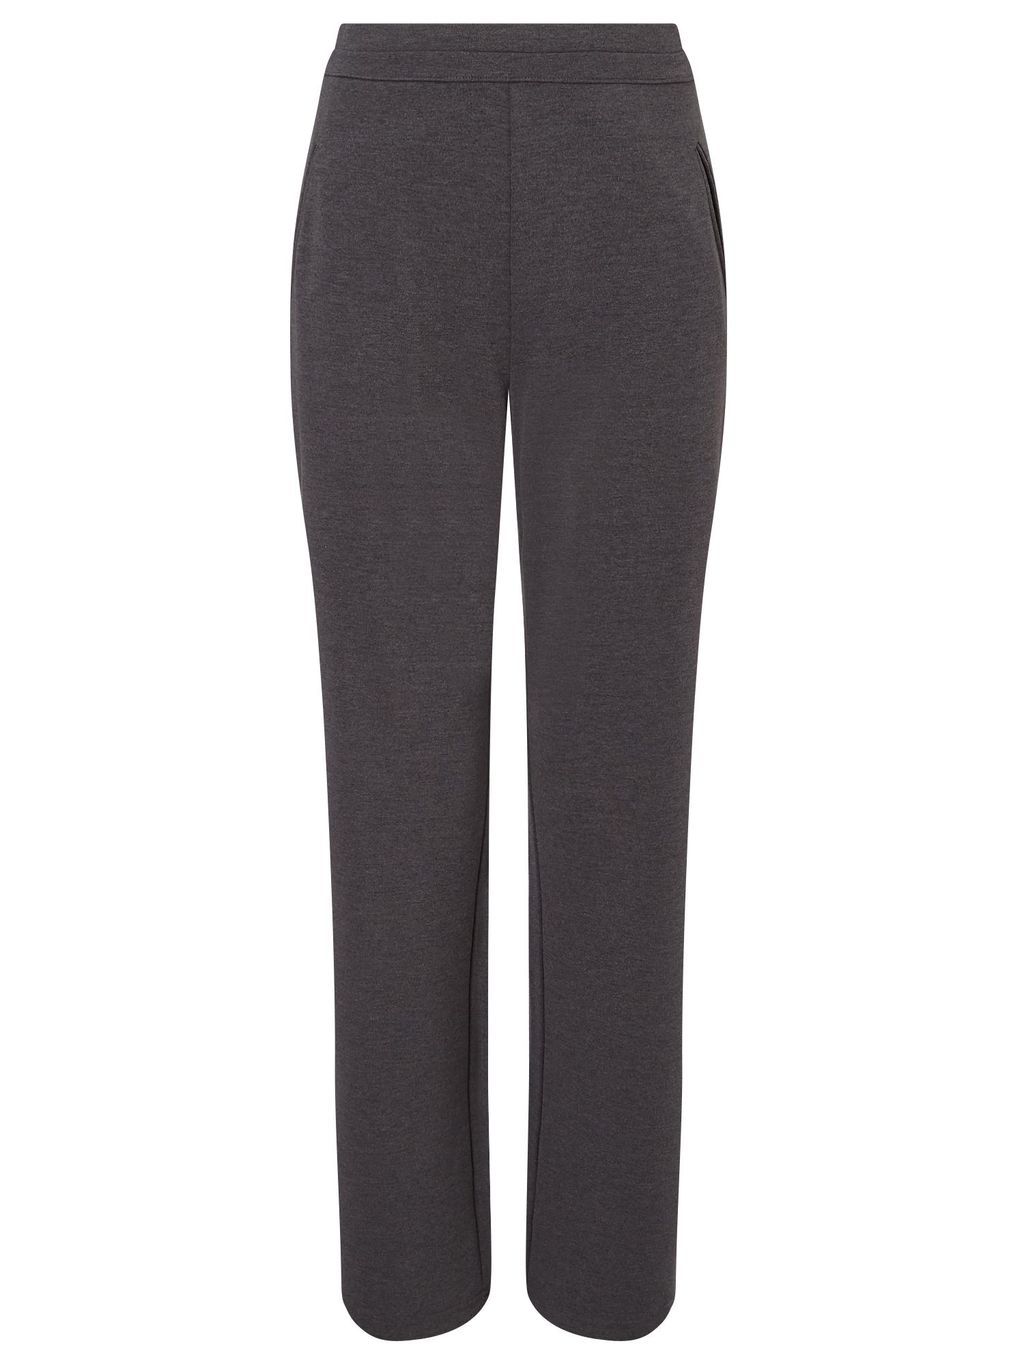 Charcoal Jogger Petite, Grey - length: standard; pattern: plain; style: tracksuit pants; waist: mid/regular rise; predominant colour: charcoal; occasions: casual; fibres: polyester/polyamide - stretch; waist detail: feature waist detail; fit: straight leg; pattern type: fabric; texture group: jersey - stretchy/drapey; pattern size: standard (bottom); season: s/s 2016; wardrobe: basic